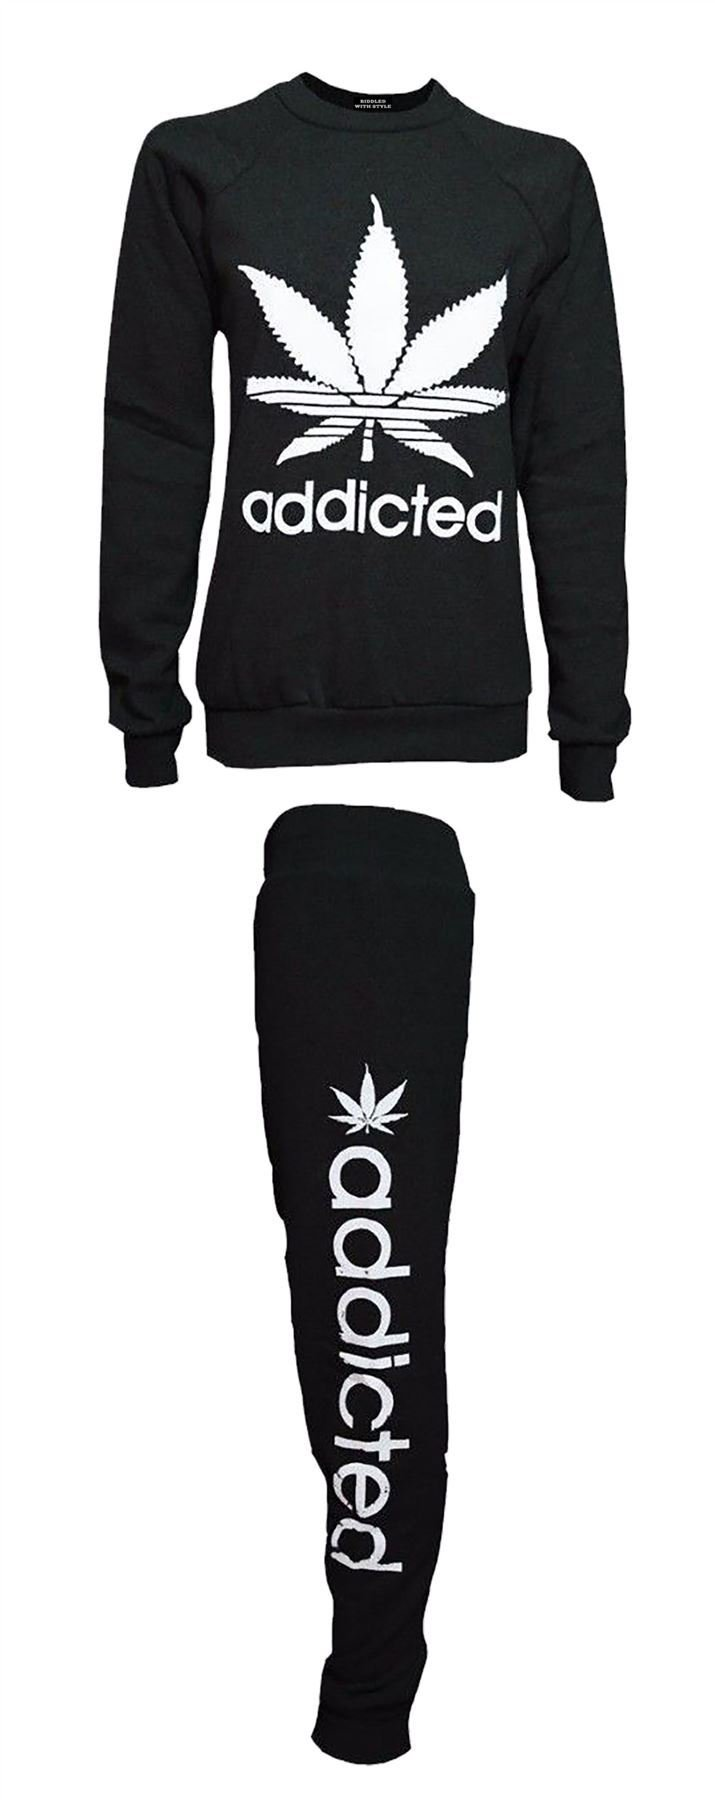 Ladies Love Addicted Weed Cannabis Print Leaf Sweat Suit Womens 2 PC Tracksuit#(Black Addicted Print 2 Pc Tracksuit#US 10-12#Womens)